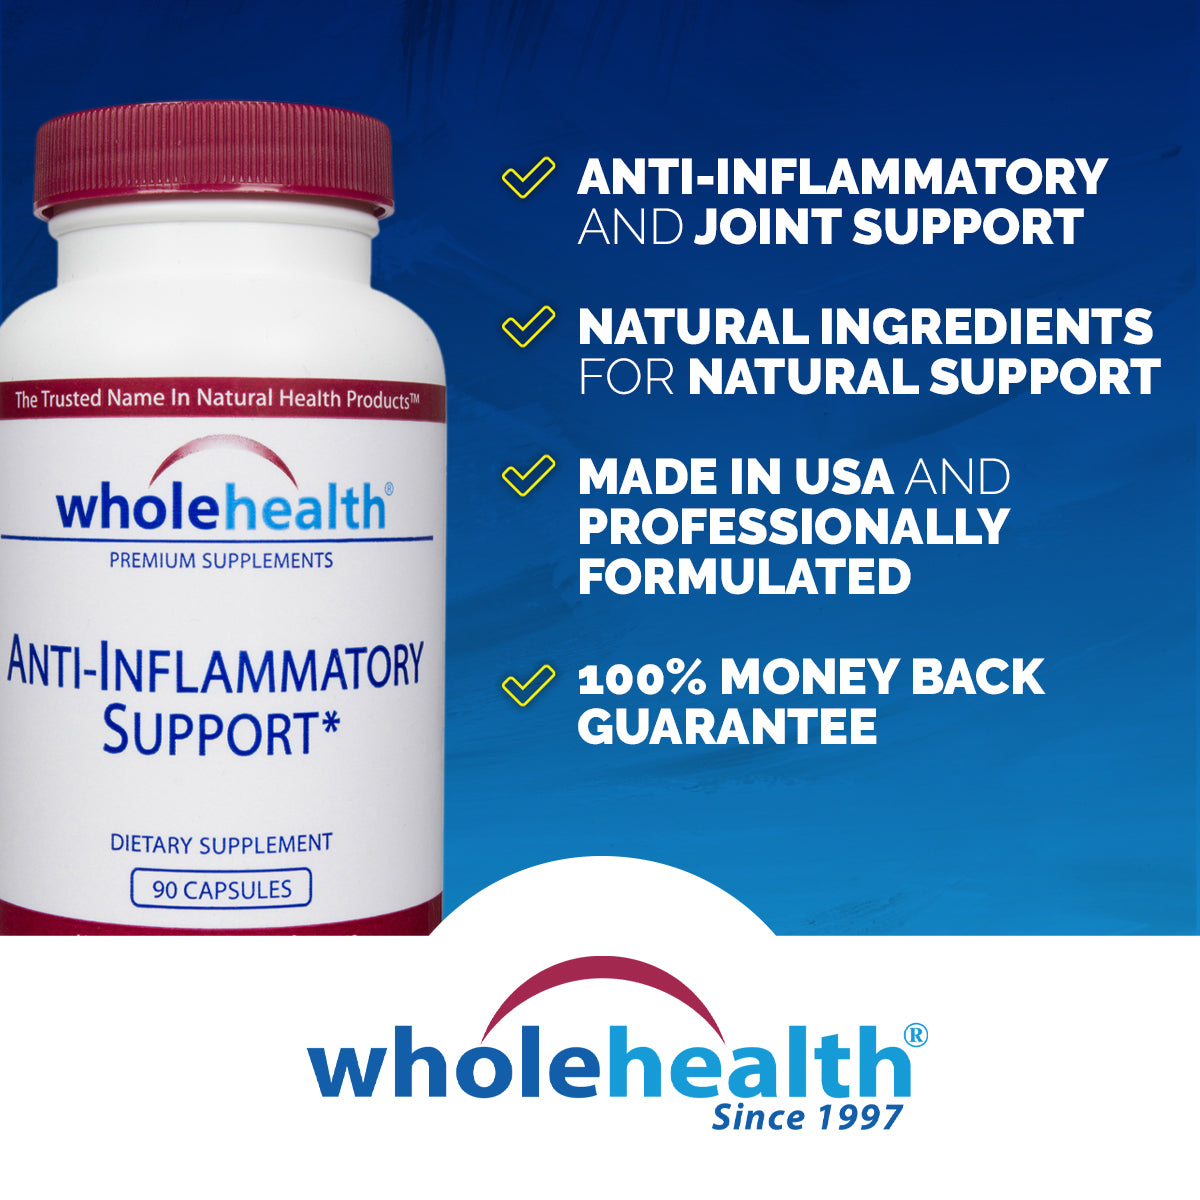 Anti-Inflammatory Support (90 Capsules)